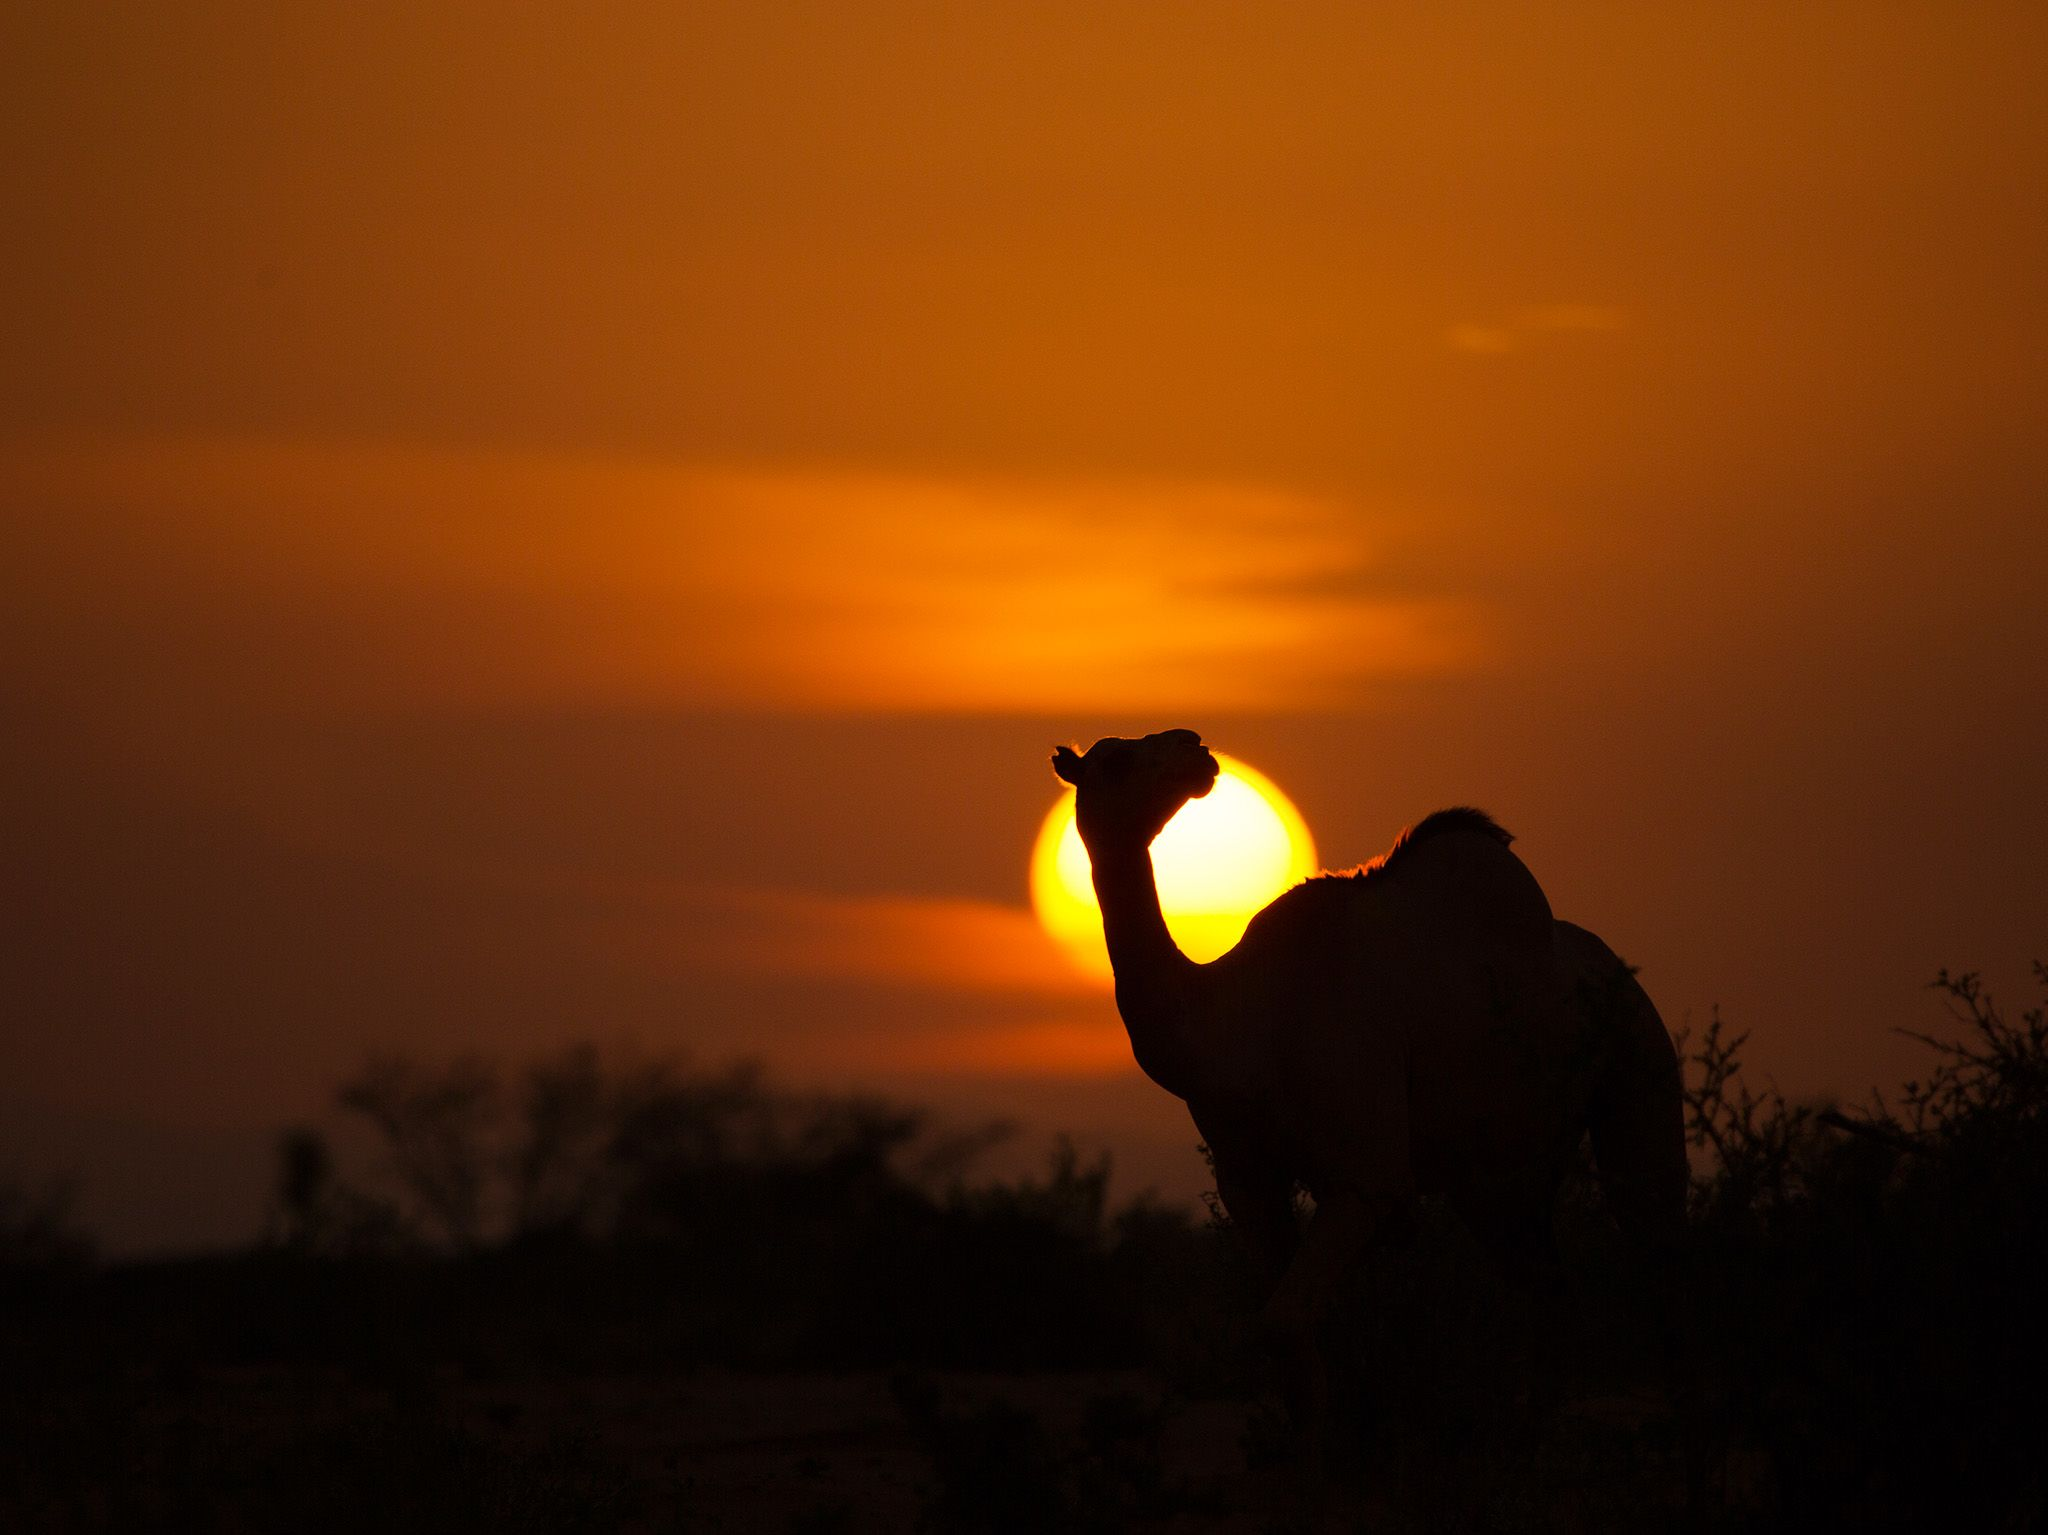 Kenya:  Sun setting behind a camel in the Kaisut Desert. This image is from Primal Survivor. [Foto del giorno - dicembre 2018]